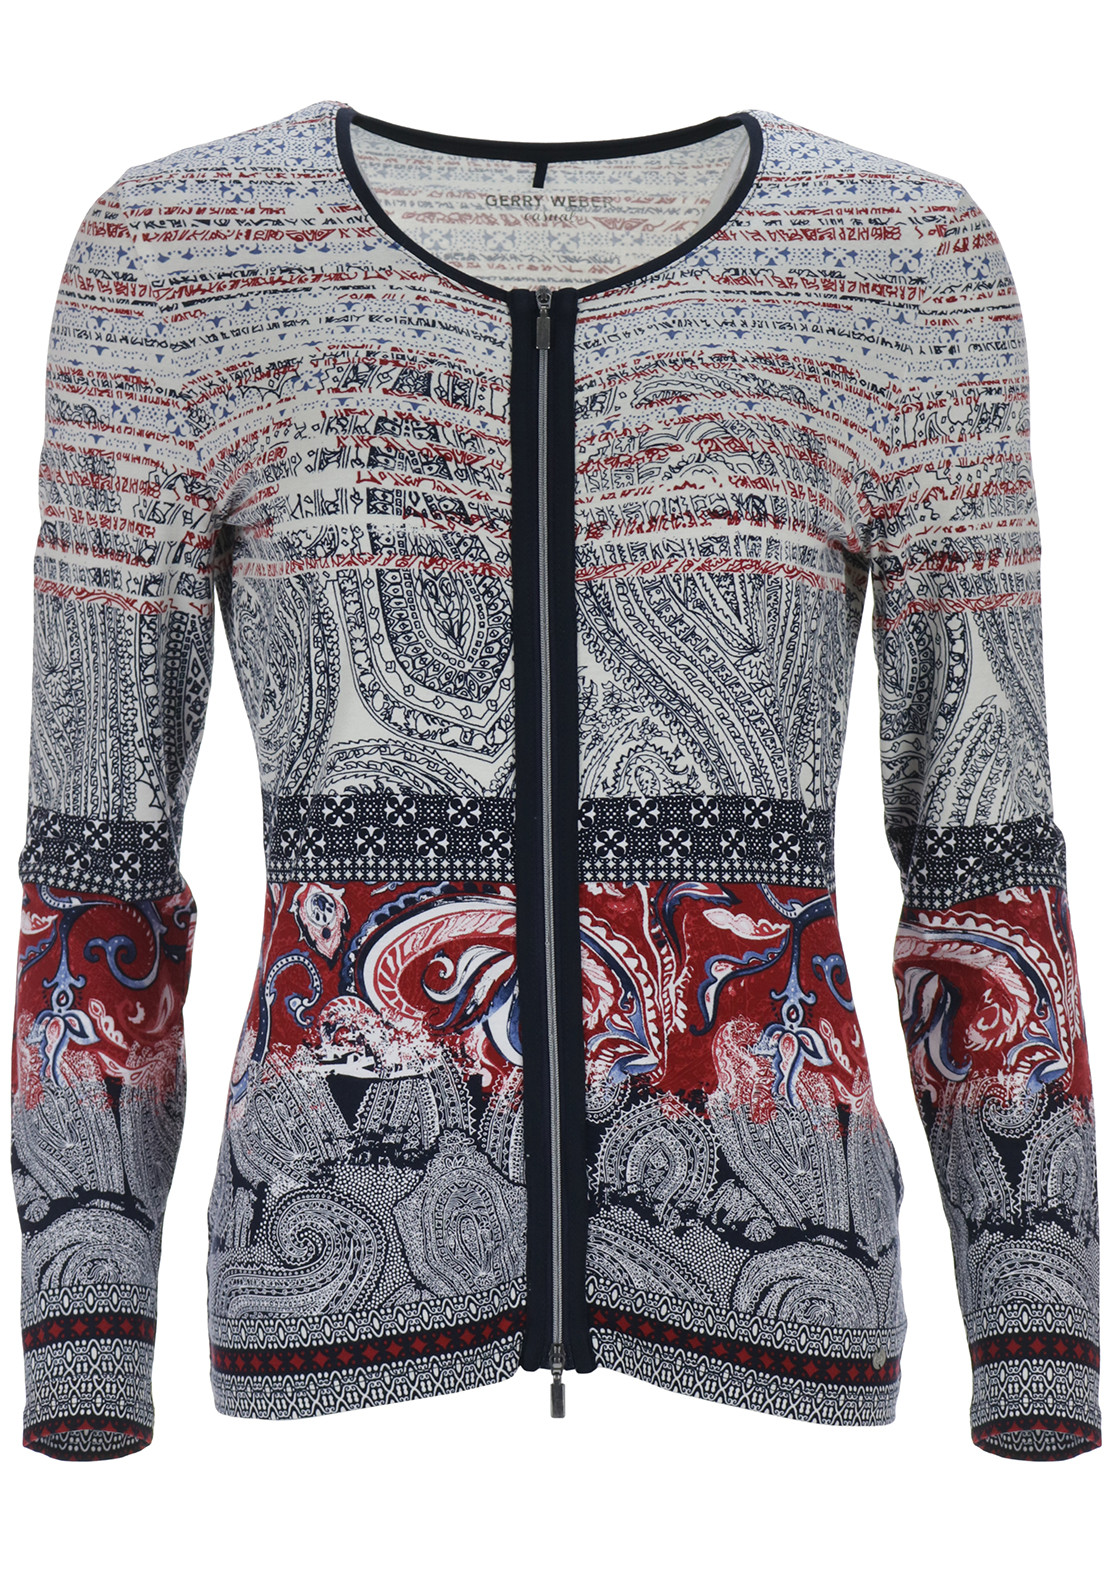 Gerry Weber Paisley Print Zip Cardigan, Multi-Coloured